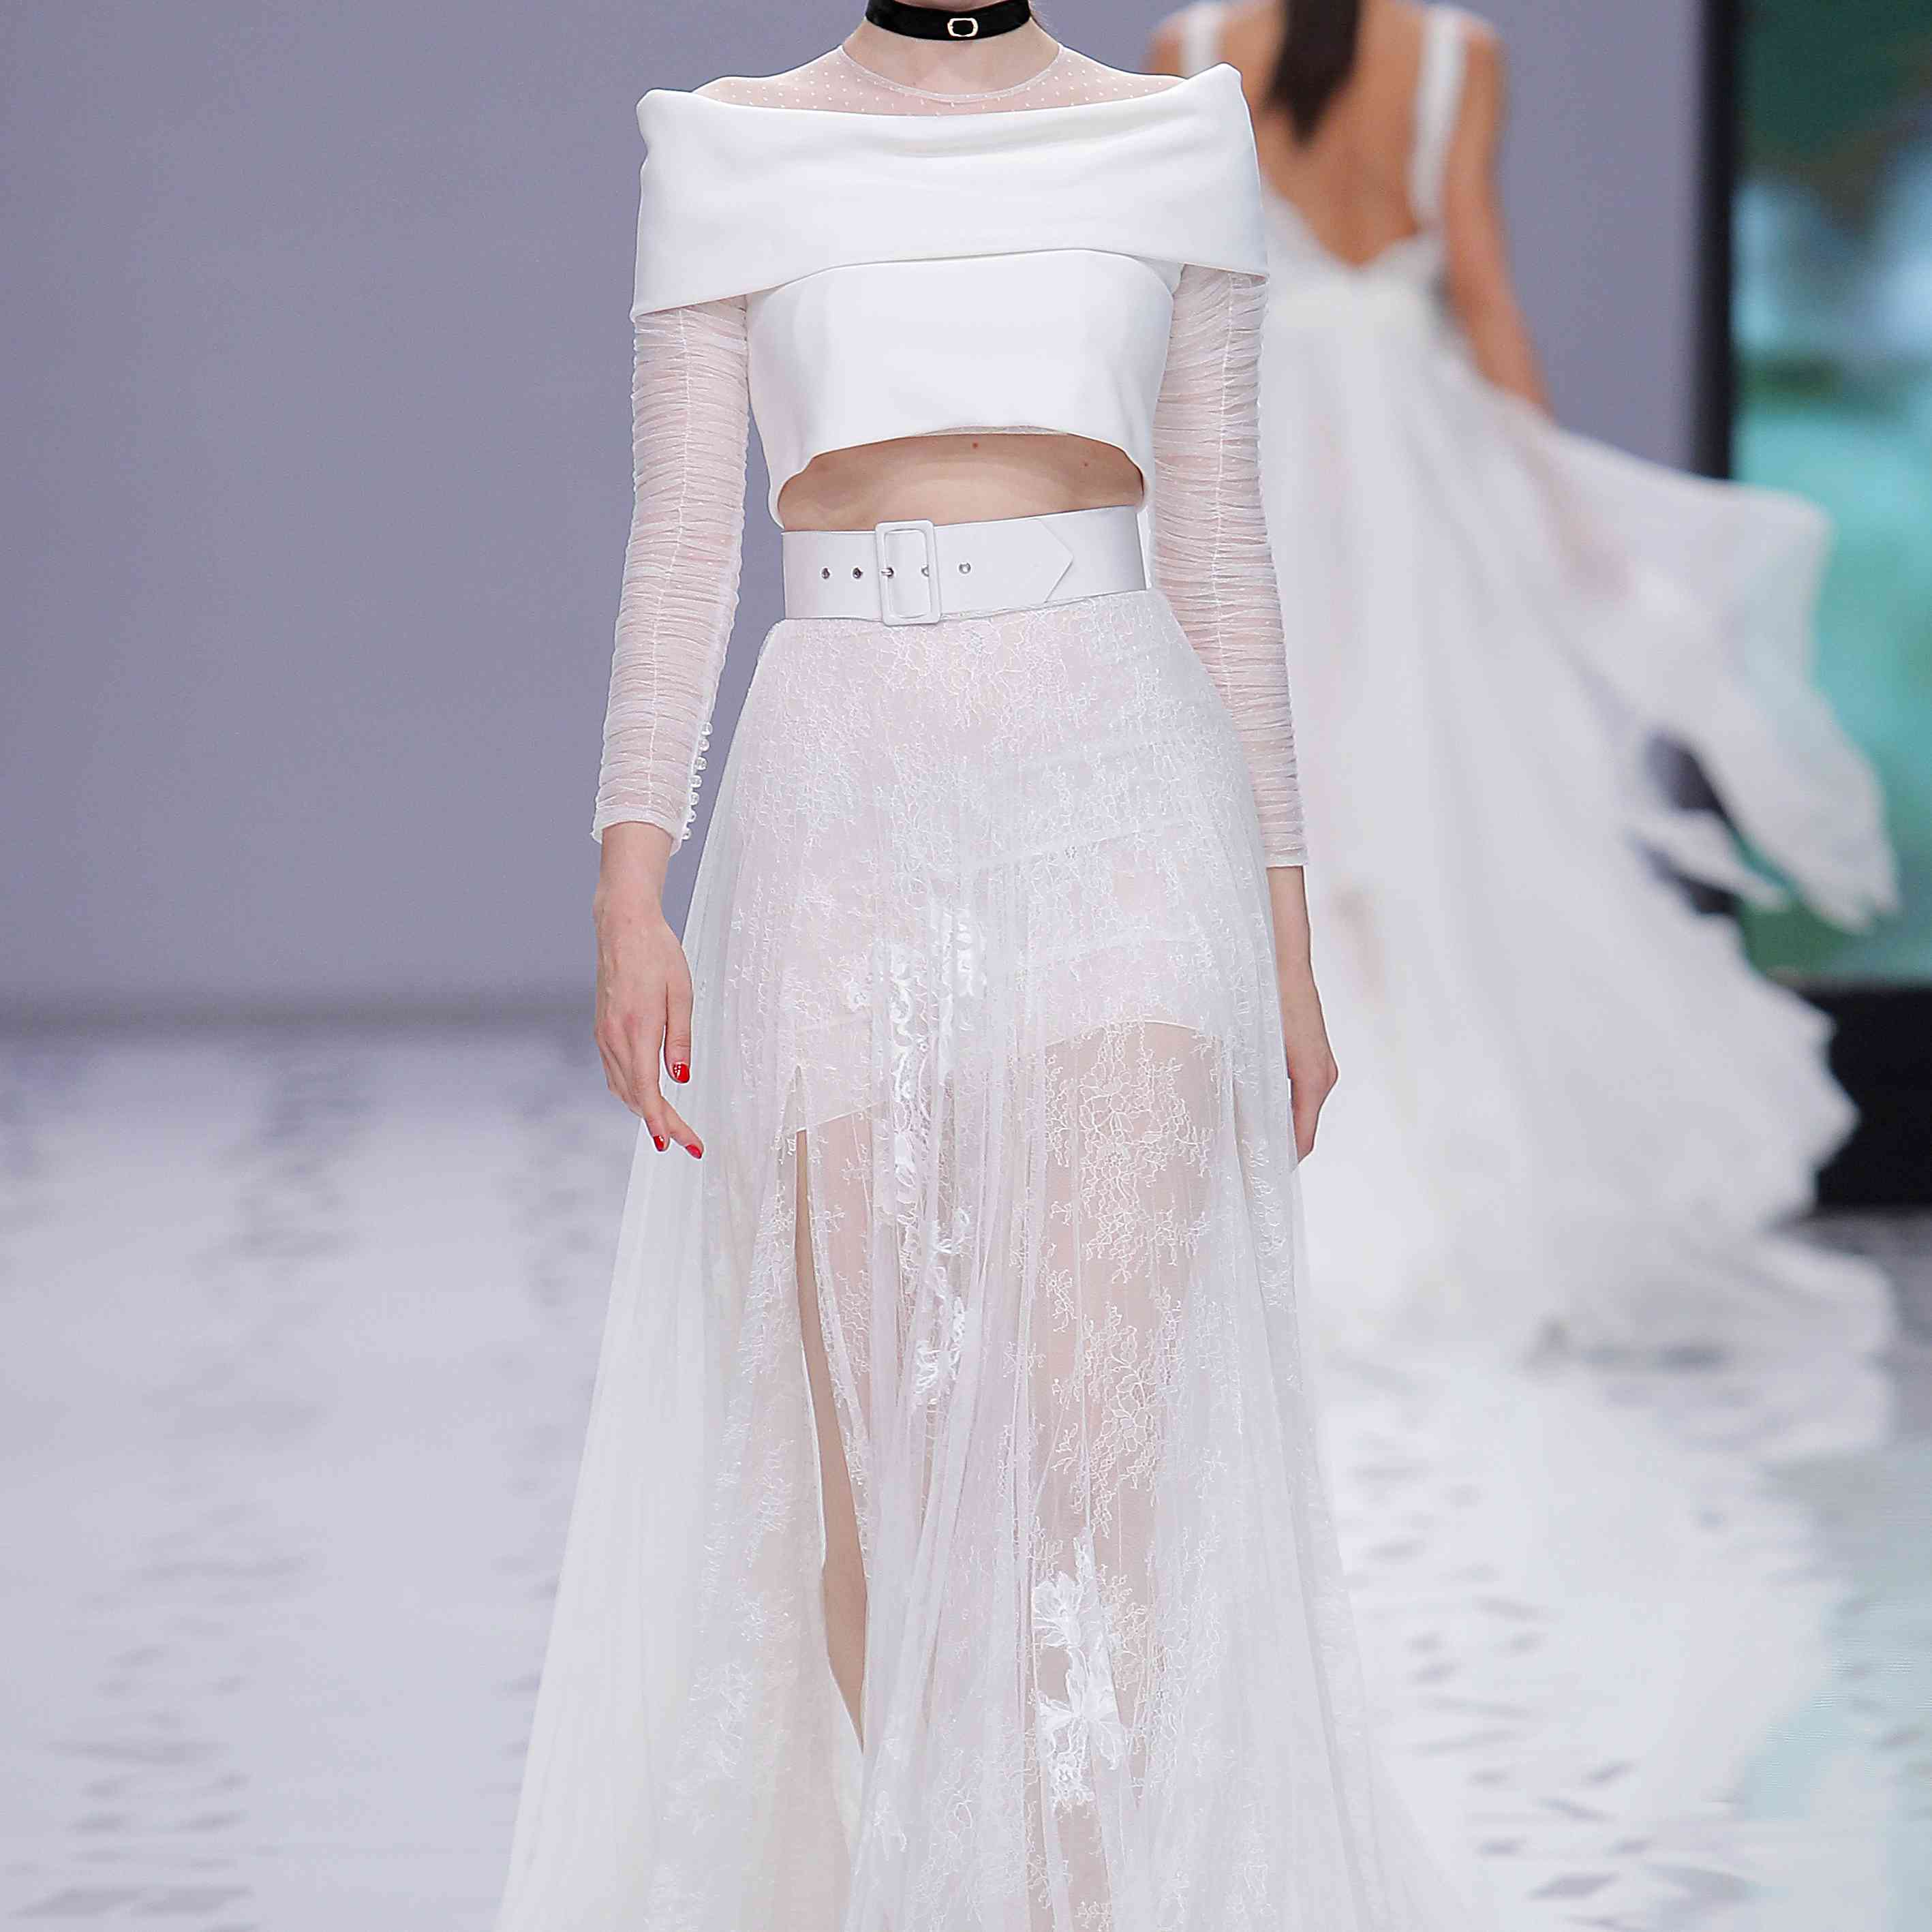 Model in off-the-shoulder crepe crop-top with foldover neckline and gathered tulle long sleeves and an A-line lace and tulle full skirt with front slit, worn with thick white belt